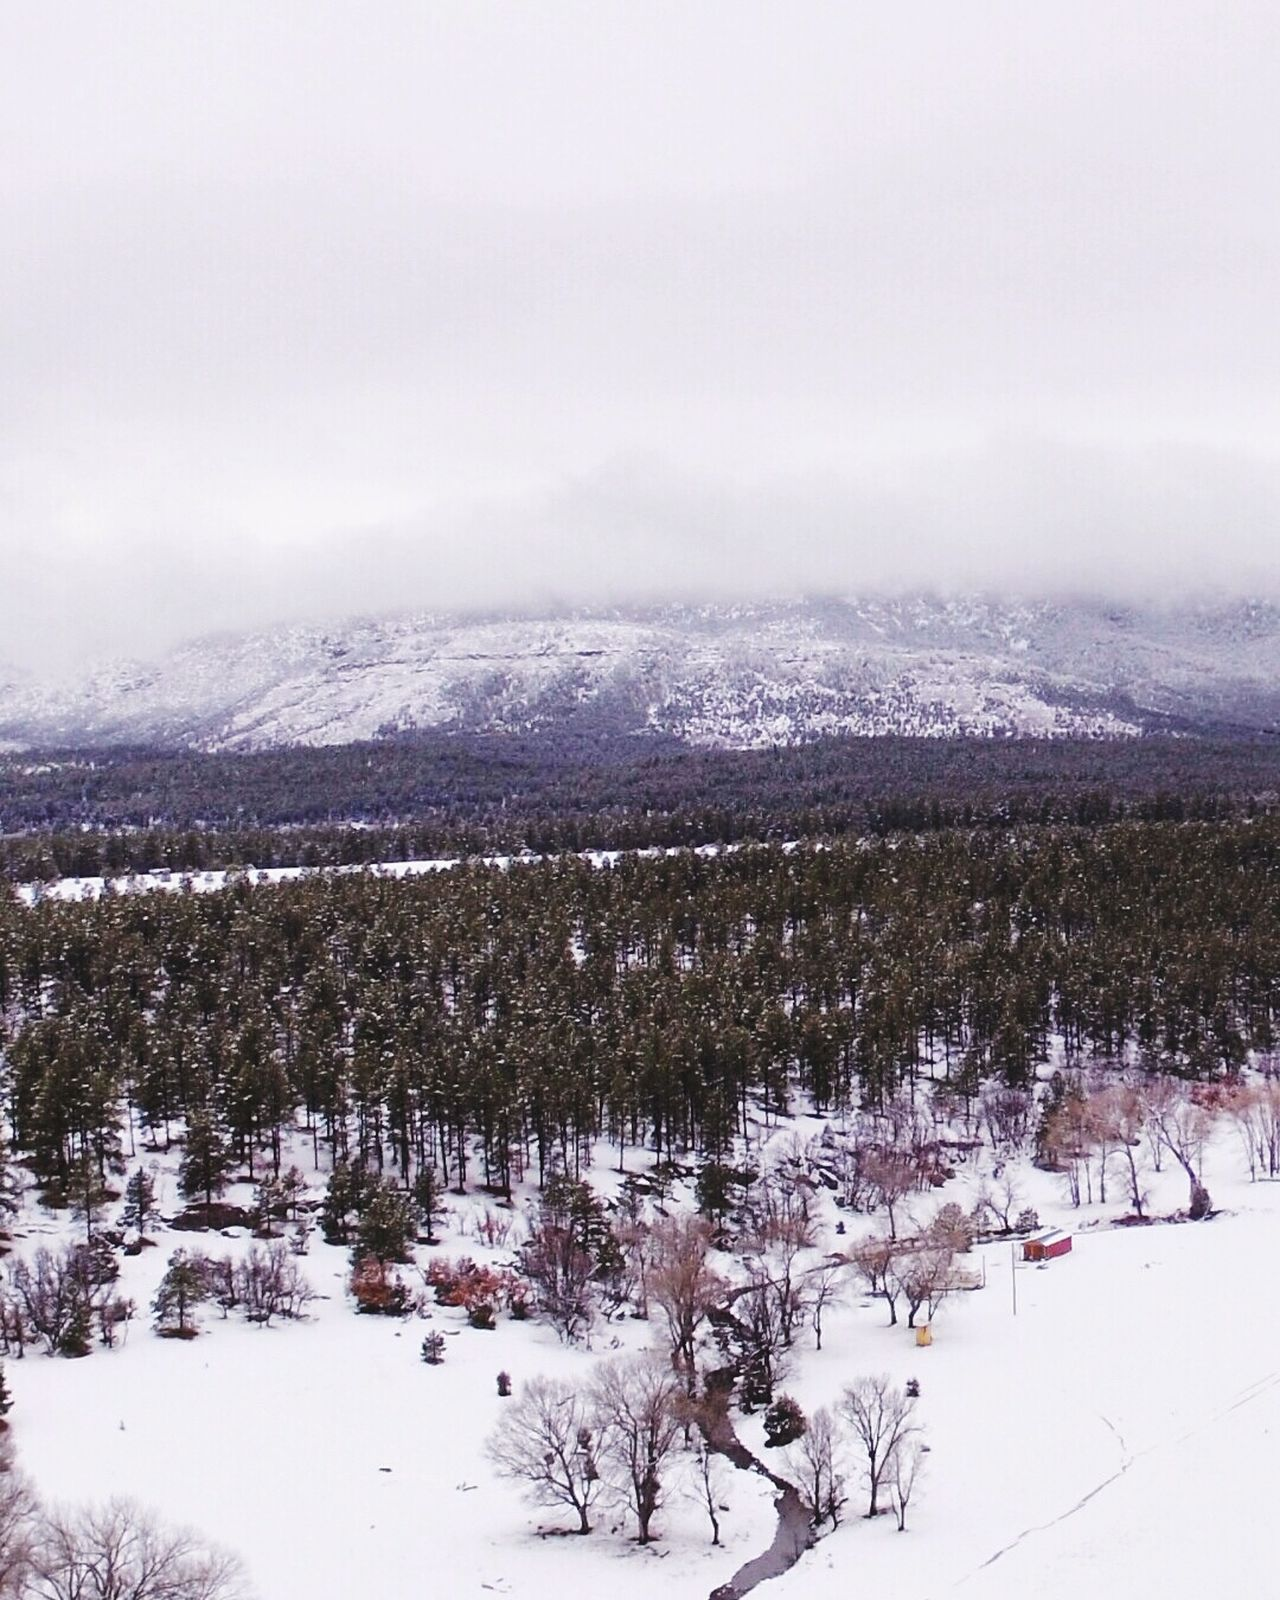 Snow Winter Cold Temperature Dramatic Sky Outdoors Forest Newmexicosunset Newmexicosunsets Newmexicoskys Newmexicophotography Newmexicoskies NewMexicoTRUE DJI Phantom 3 Air Vehicle Dji Global Flying Newmexicomountain Drone  Mountain Peak Mountain Pine Woodland Snowing Sunset Winter Drone